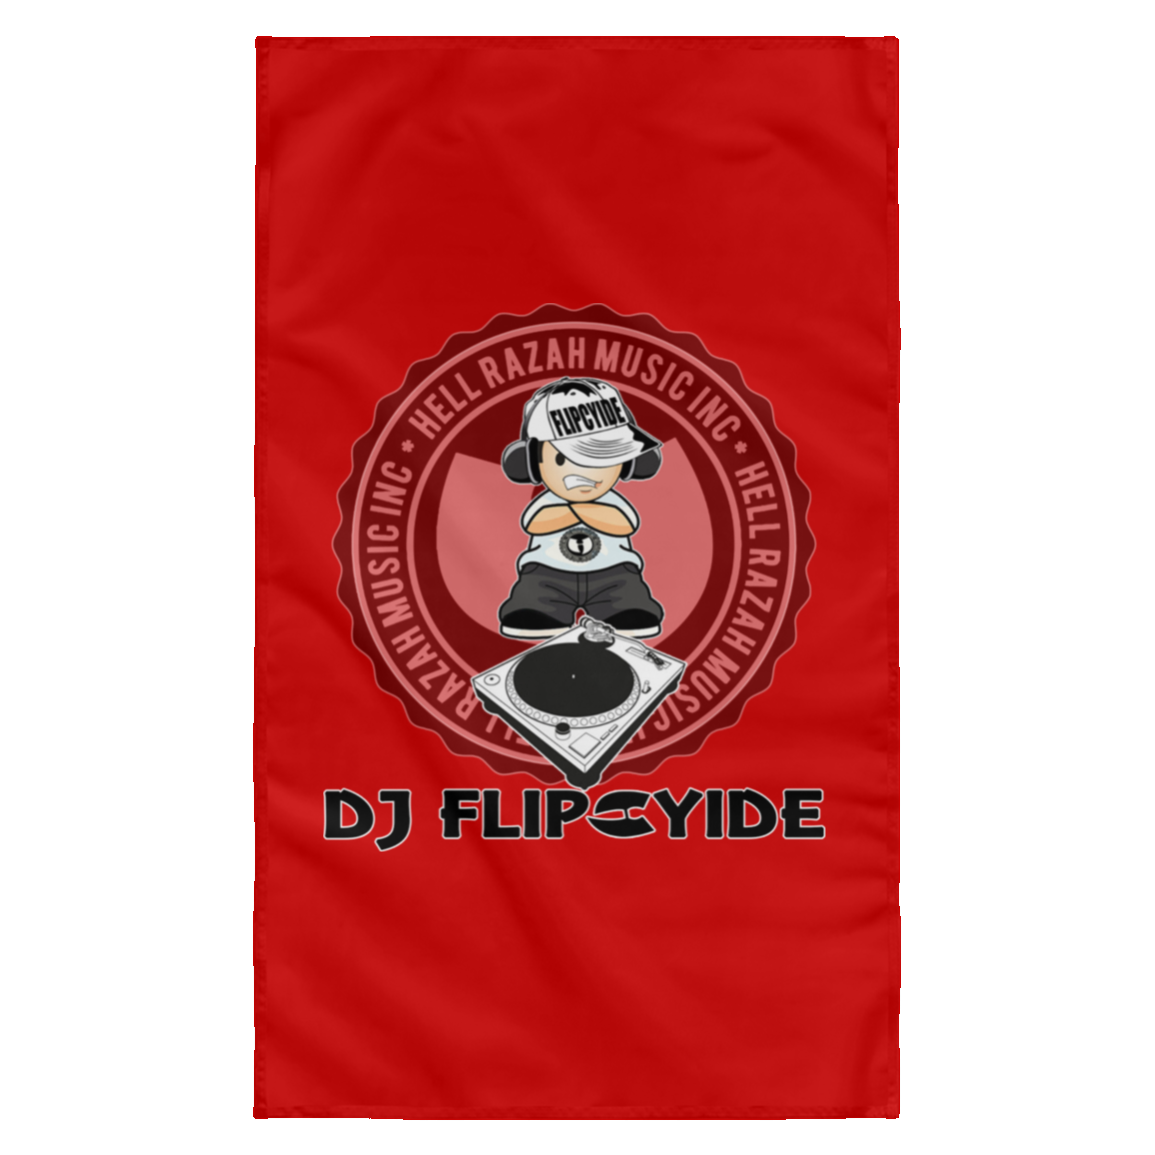 Official DJ Flipcyide HRMI Sublimated Wall Flag